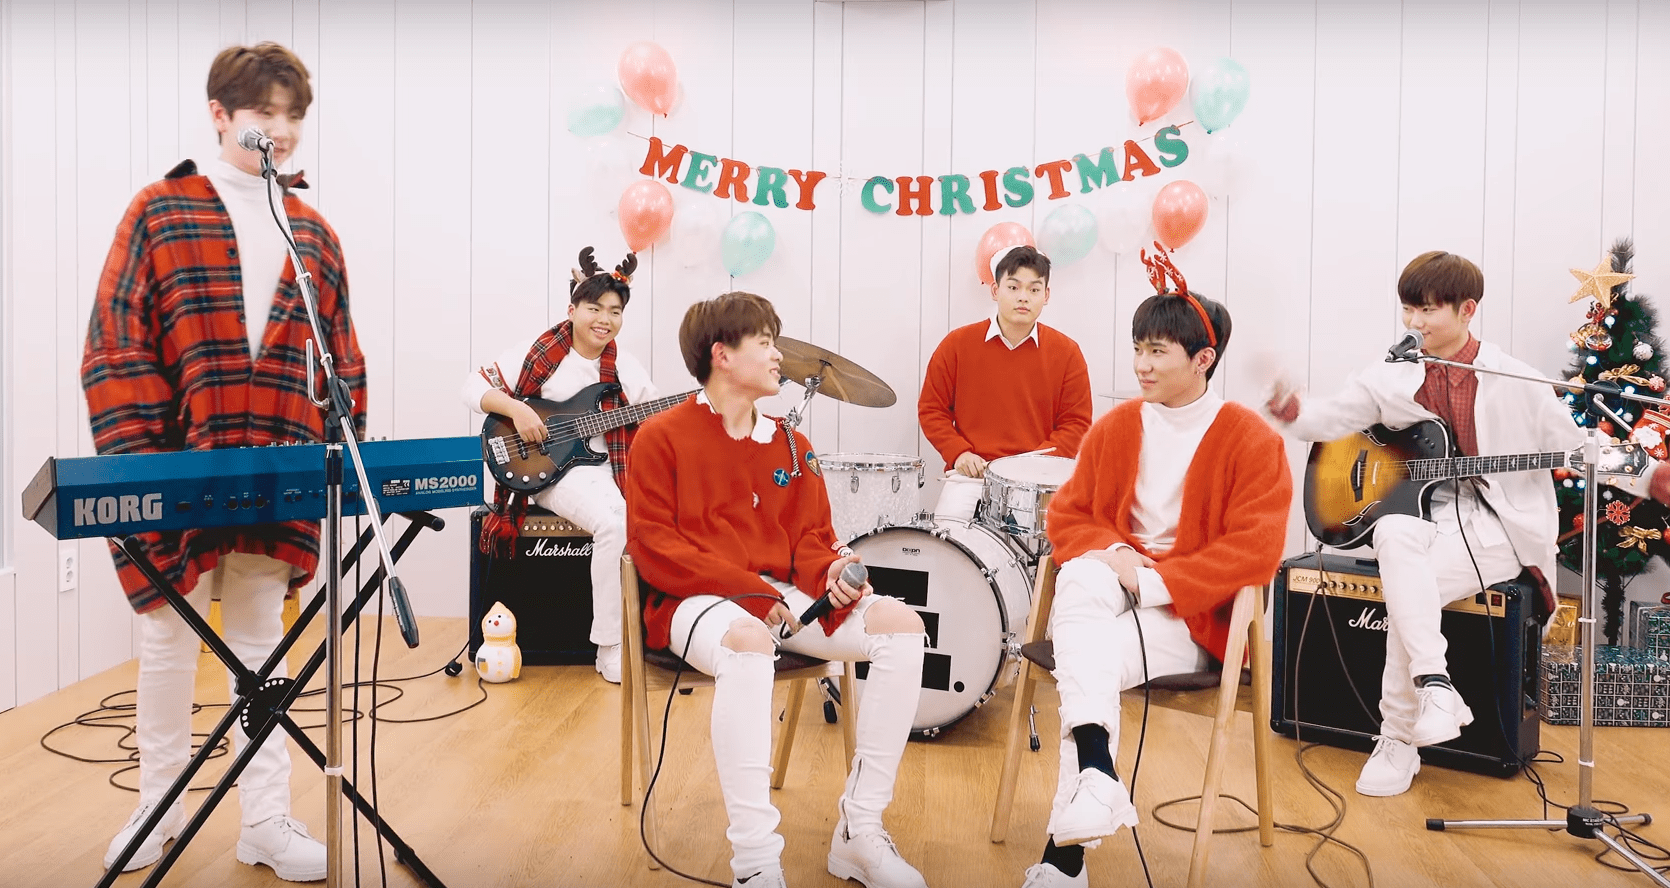 """WATCH: The East Light Shares Christmas Hopes In New """"My Wish"""" Video"""